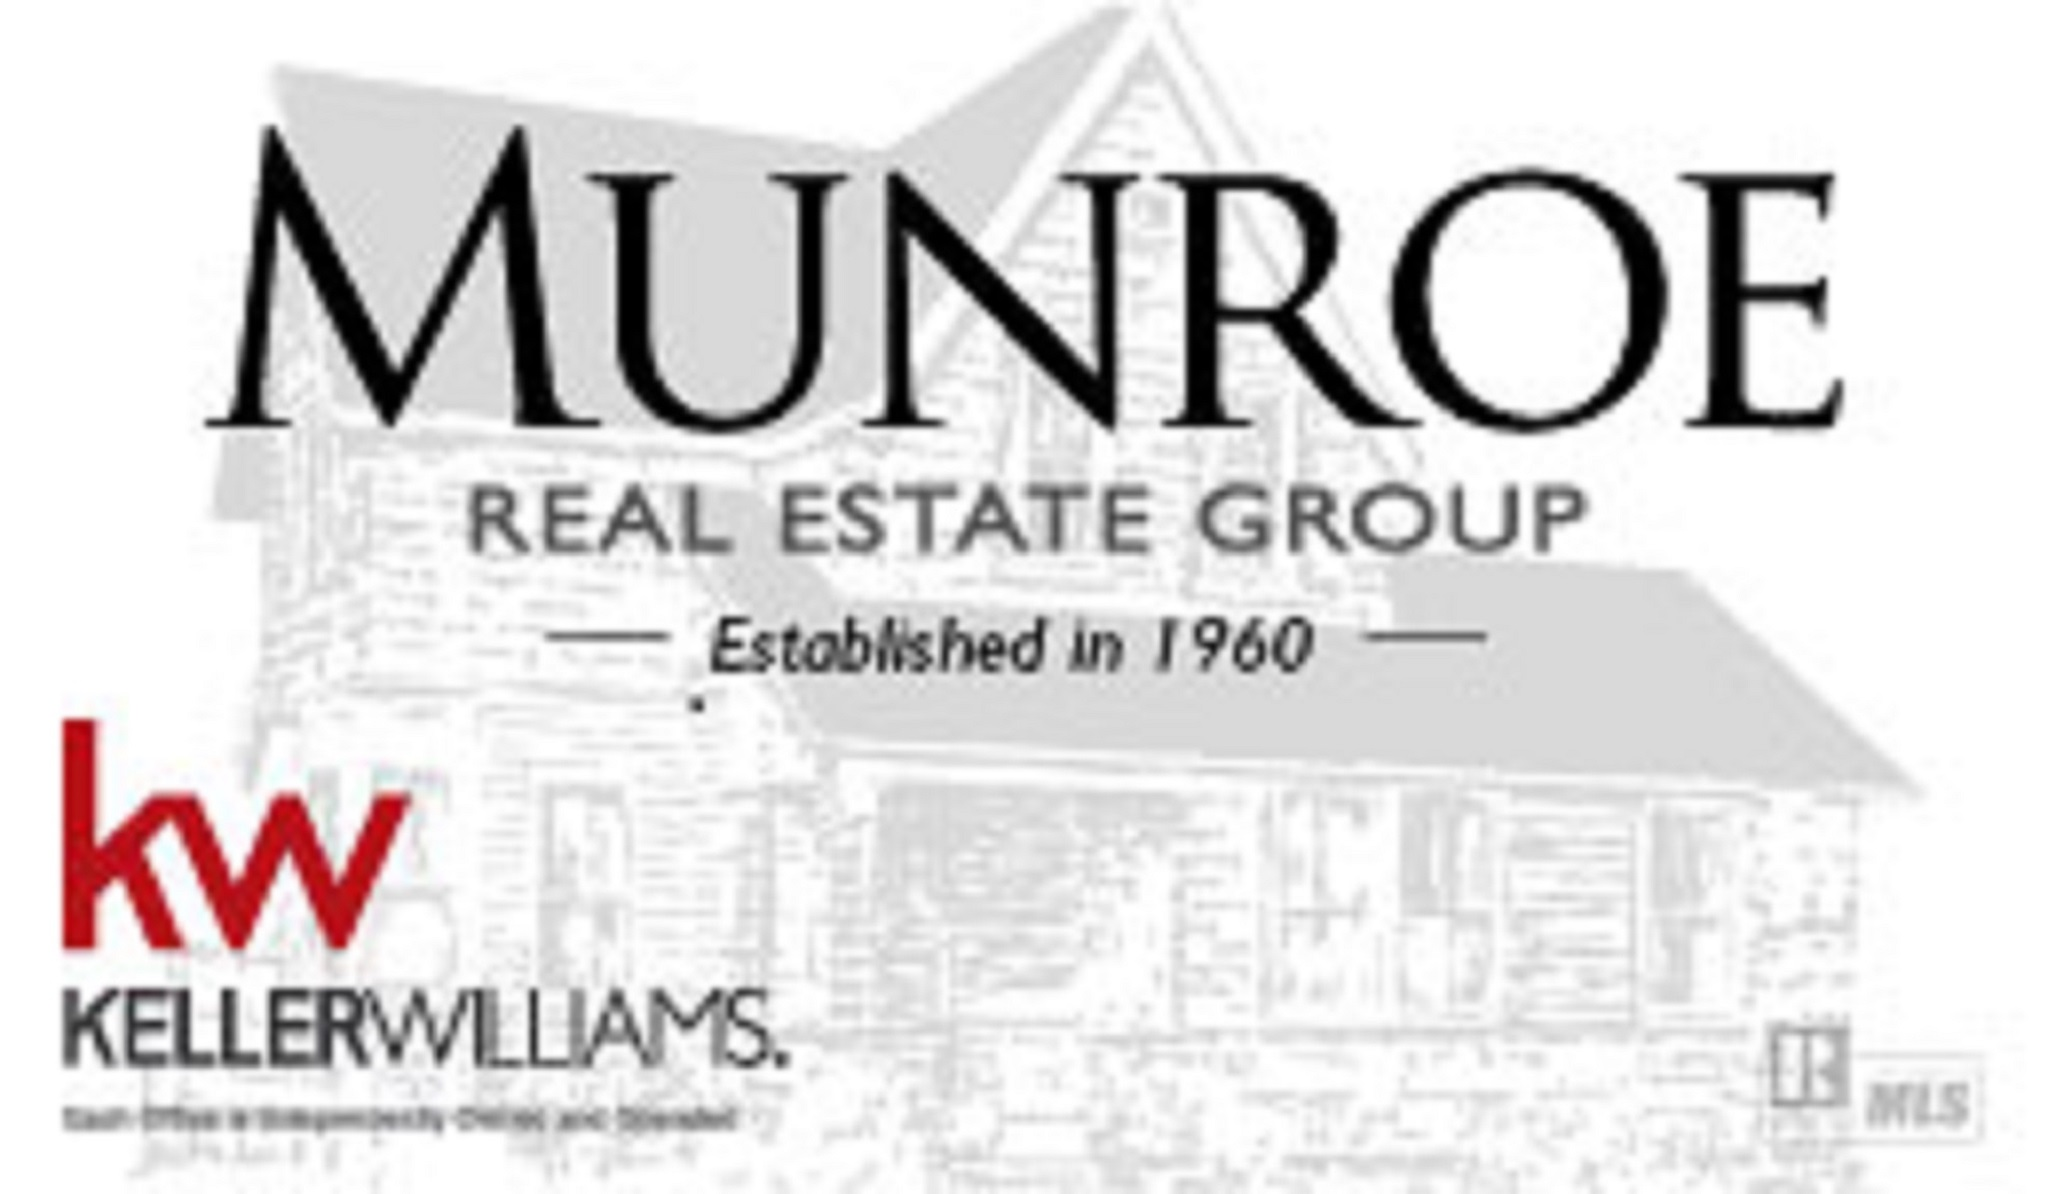 Munroe Real Estate Group